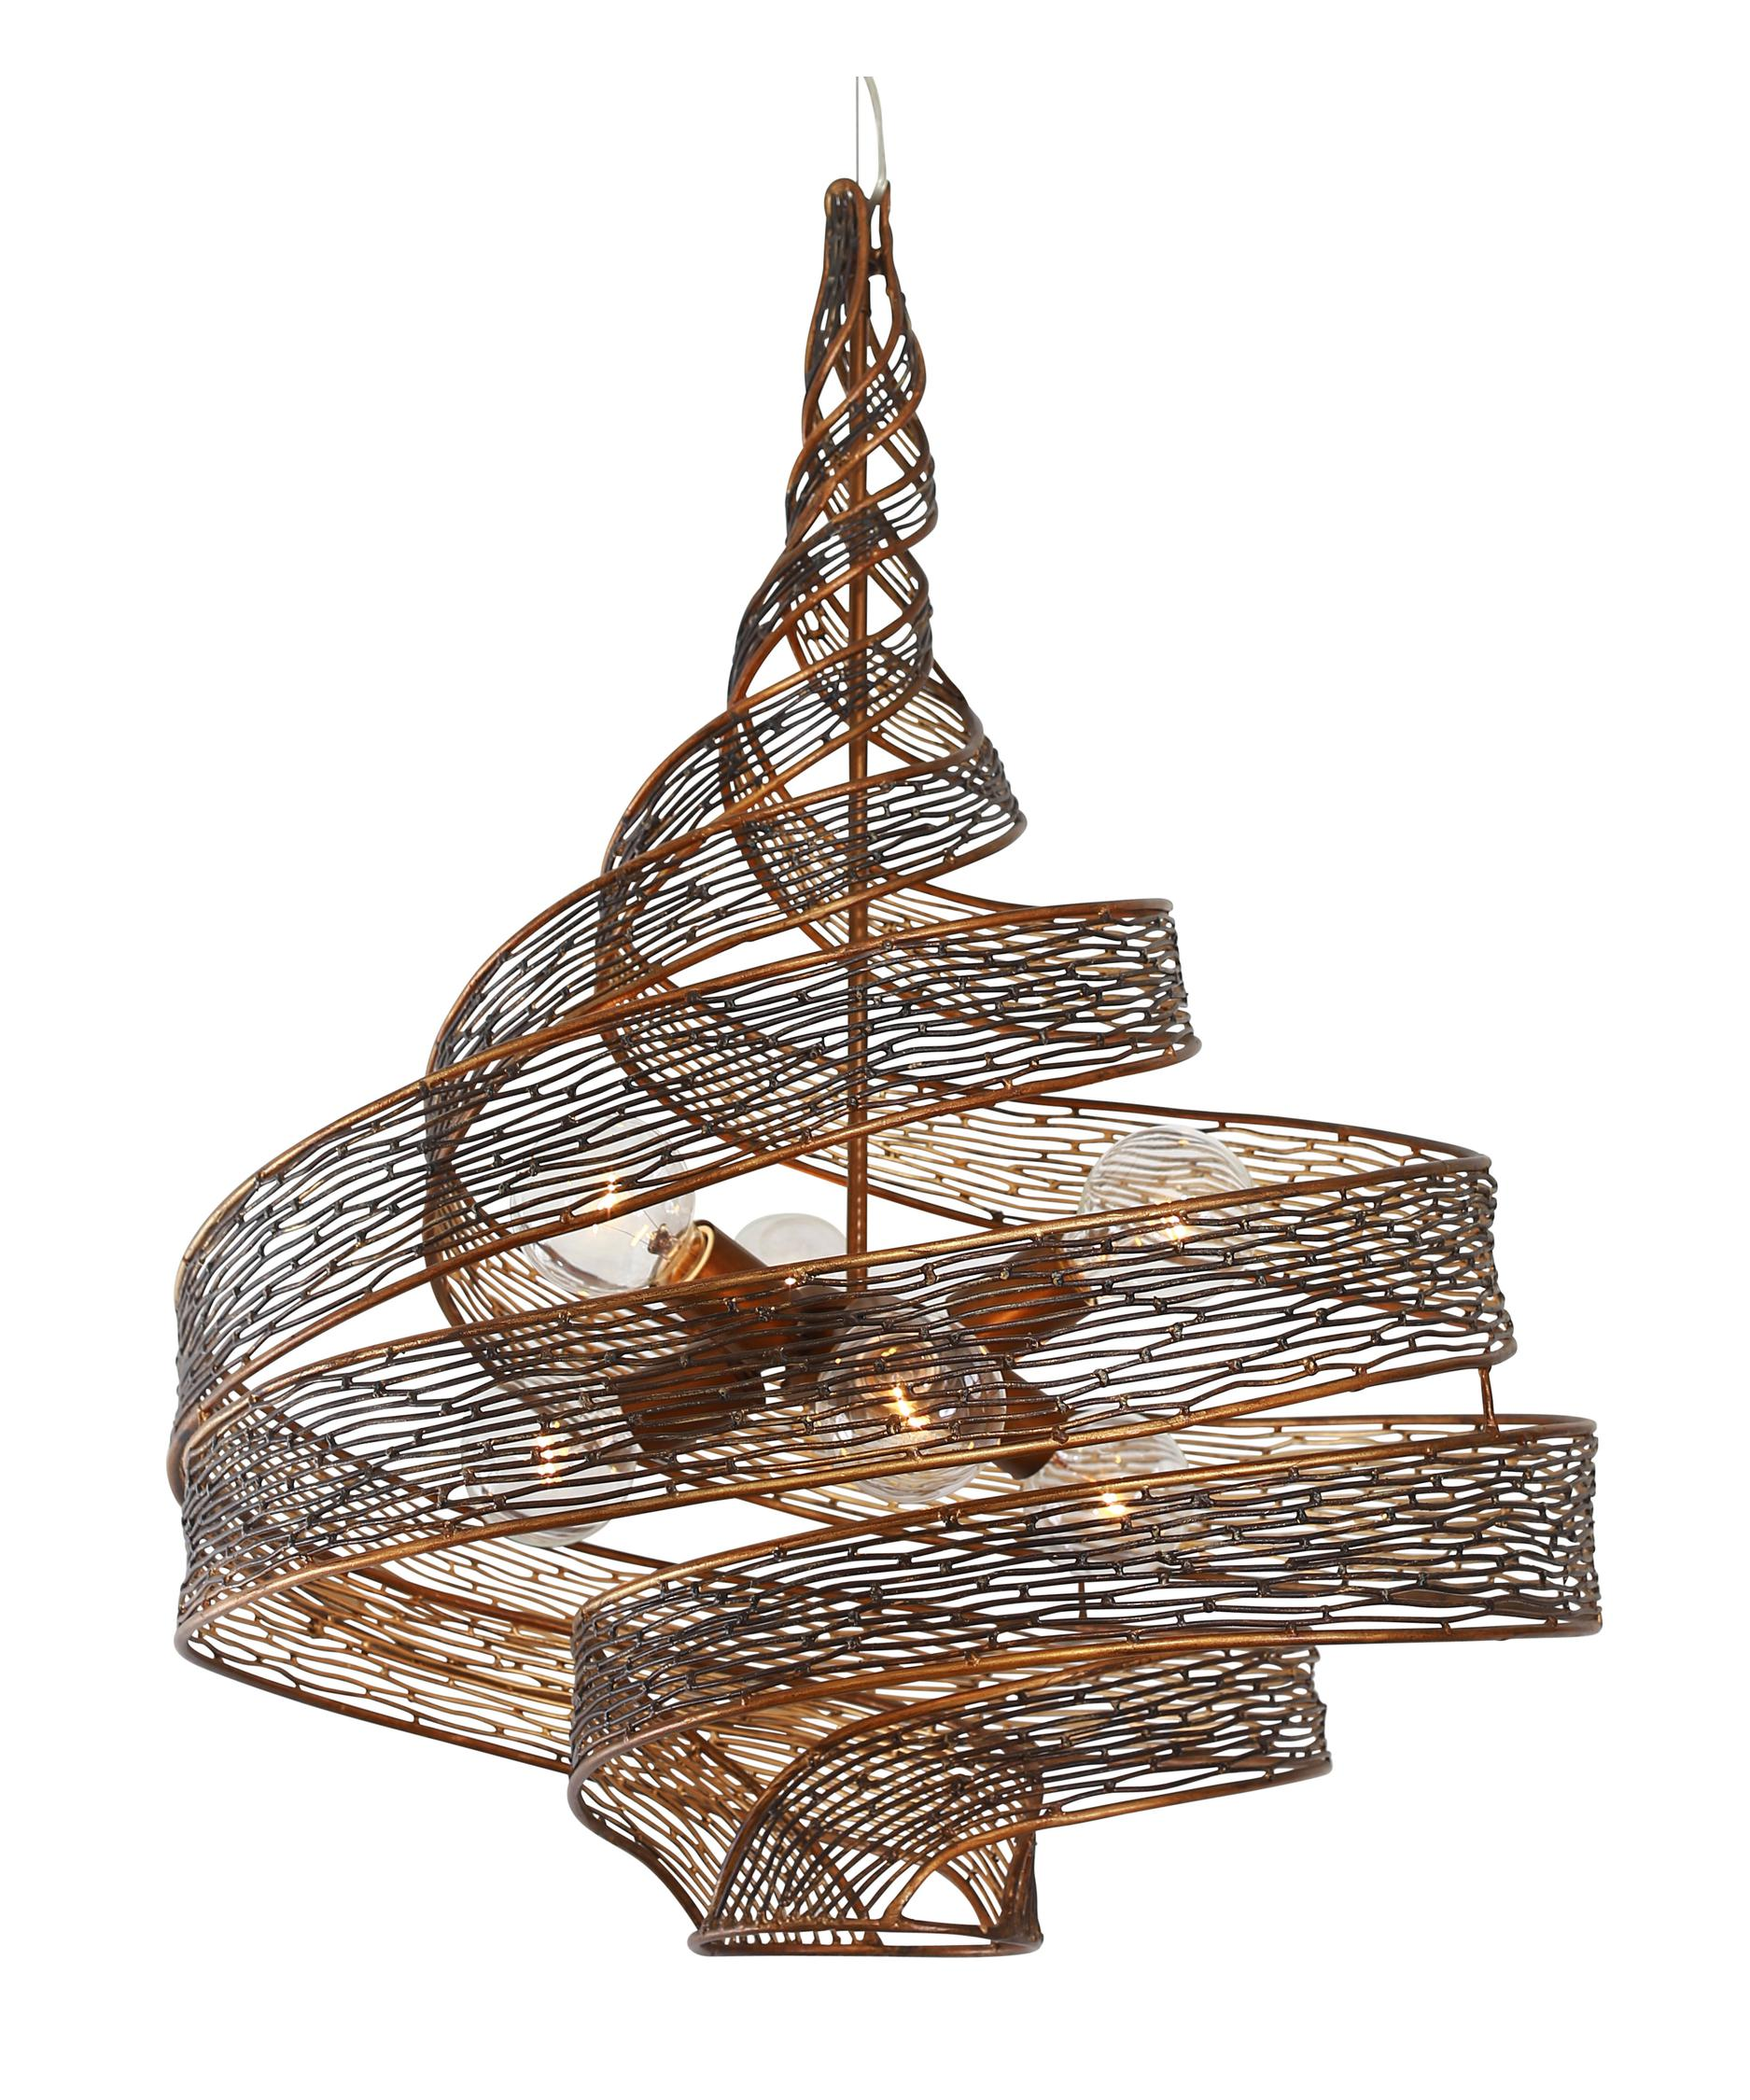 varaluz p flow  inch wide  light large pendant  capitol  - varaluz p flow  inch wide  light large pendant  capitol lightinglightingcom